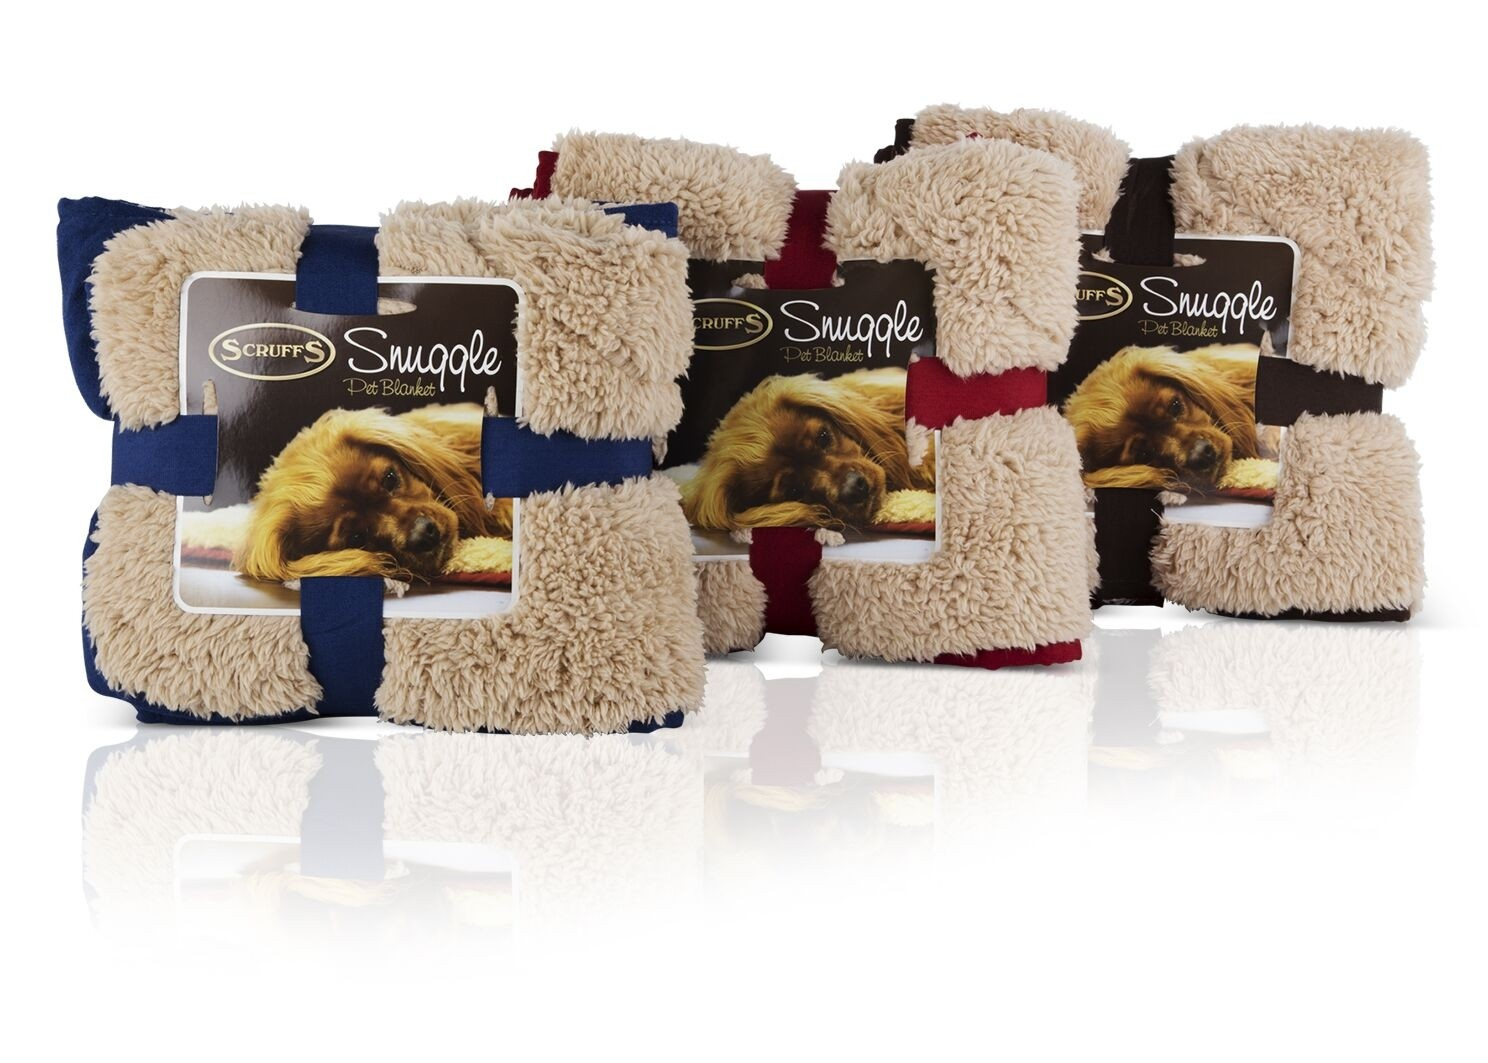 Scruffs Snuggle Blanket  - Thomas Irving's equestrian and accessories store  Scruffs Snuggle Blanket